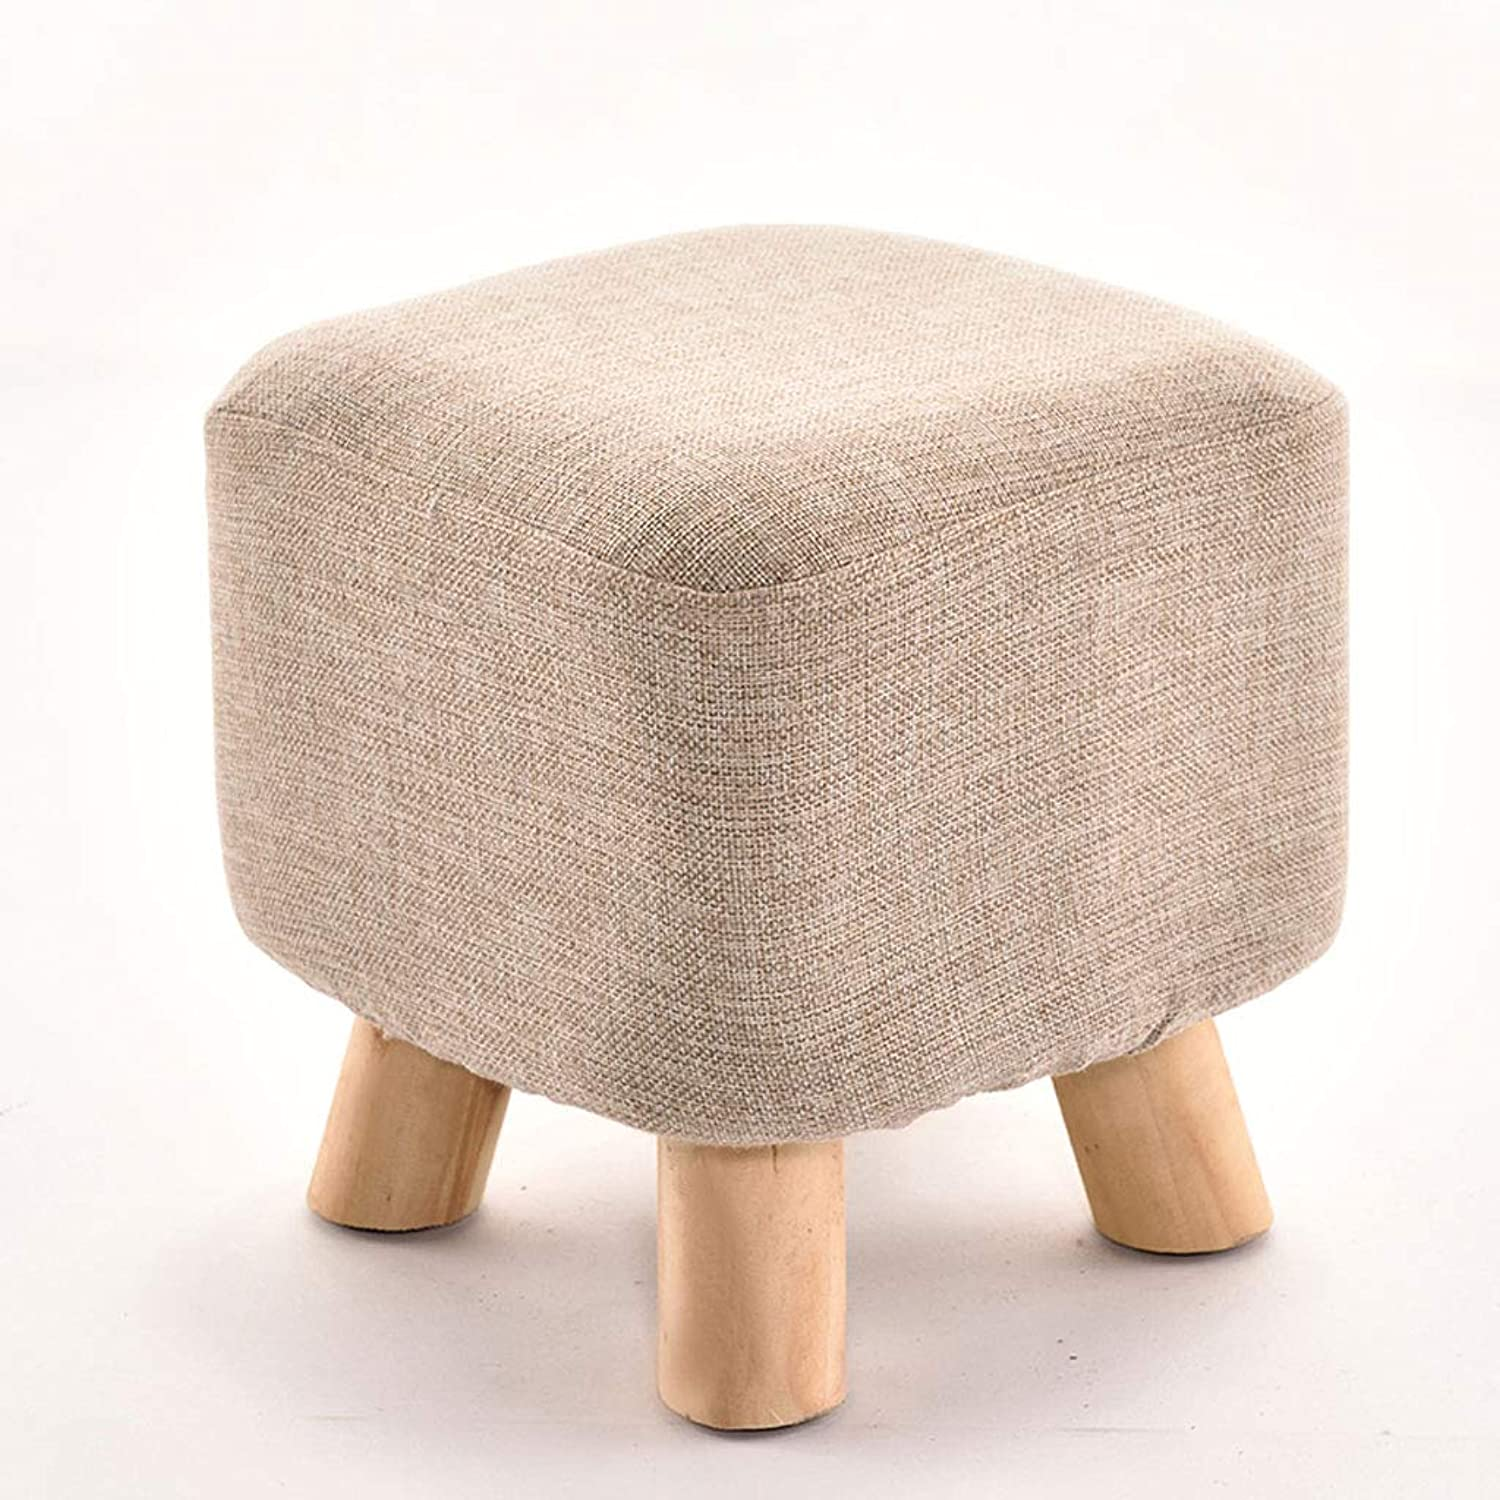 Cloth Small Low Stool Entrance shoes Wood Tea Table Sofa Stool Bench Solid Wood Stool Leg (color   Beige)